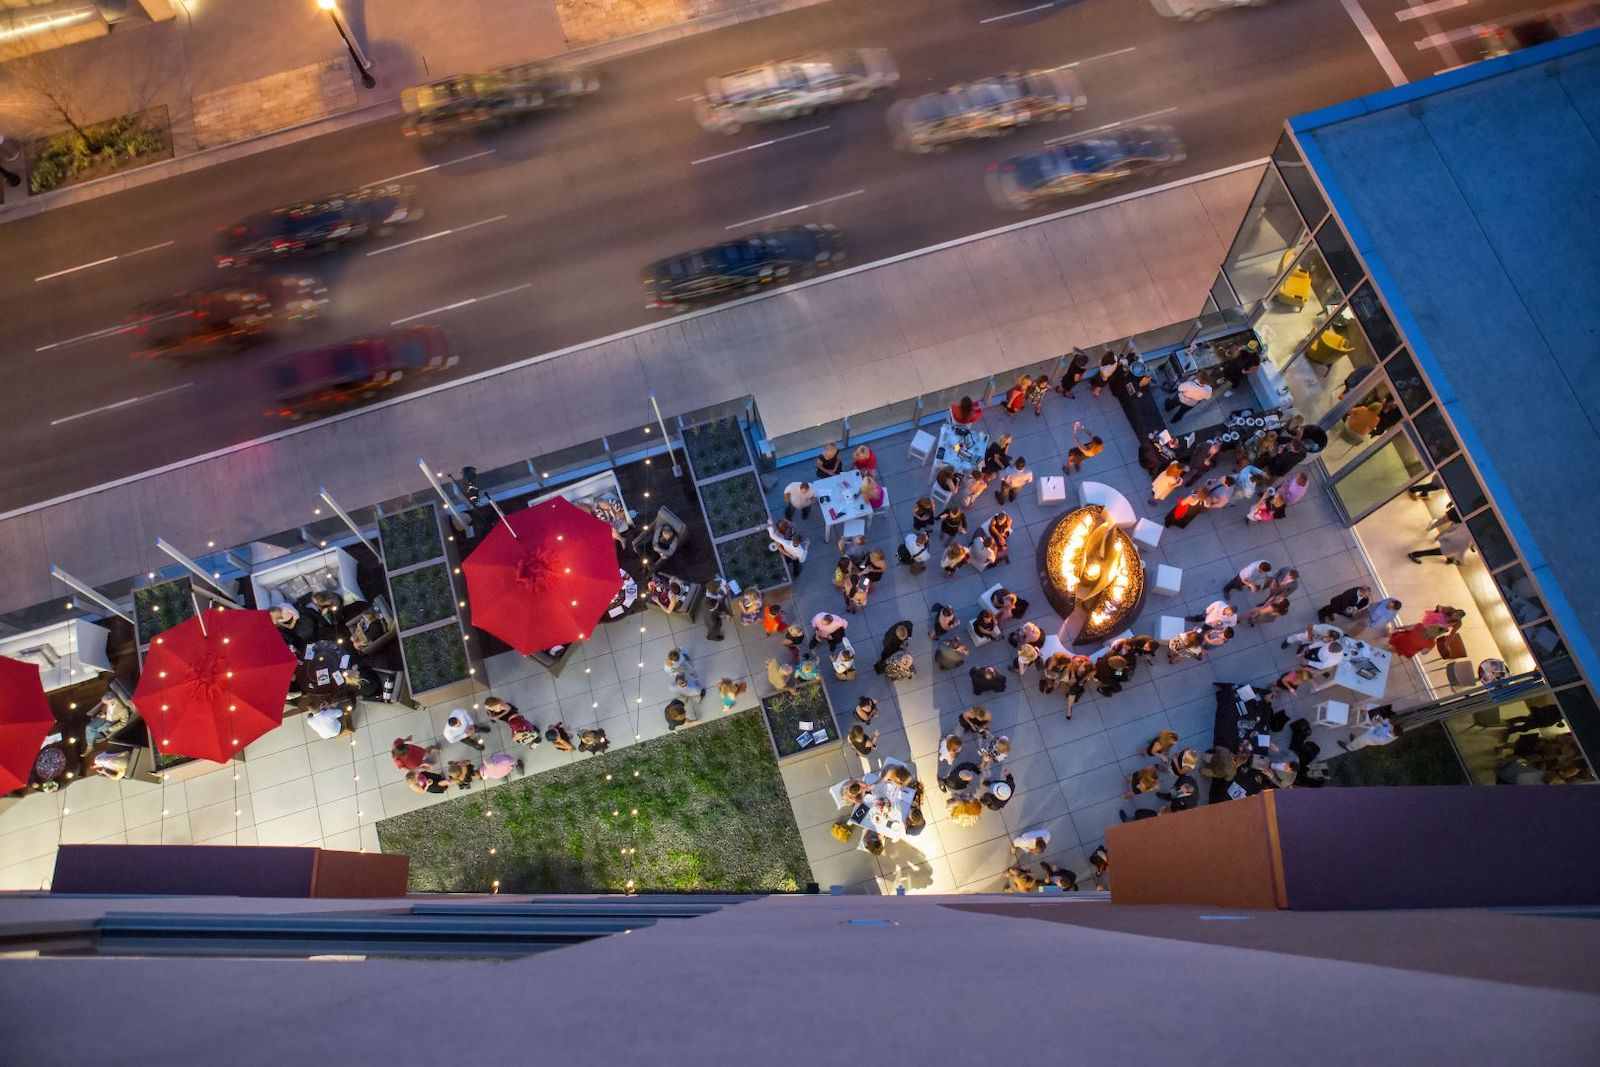 Image of the rooftop at the Art, a hotel in Denver, Colorado